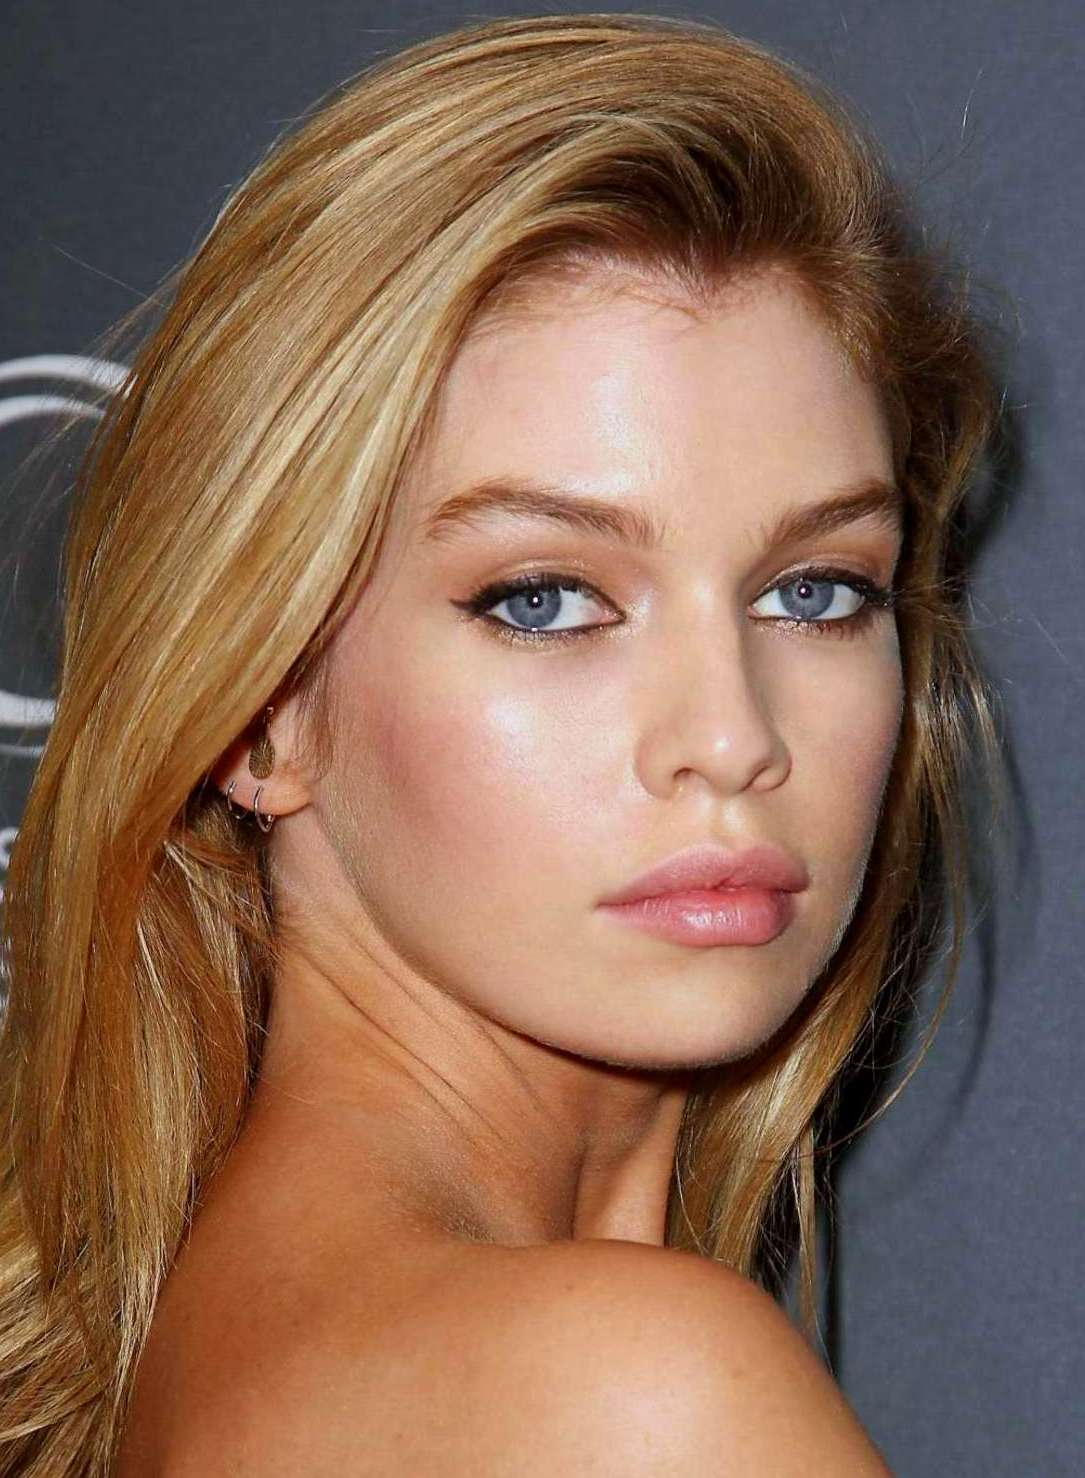 Stella Maxwell May 15 Sending Very Happy Birthday Wishes! All the Best! Cheers!